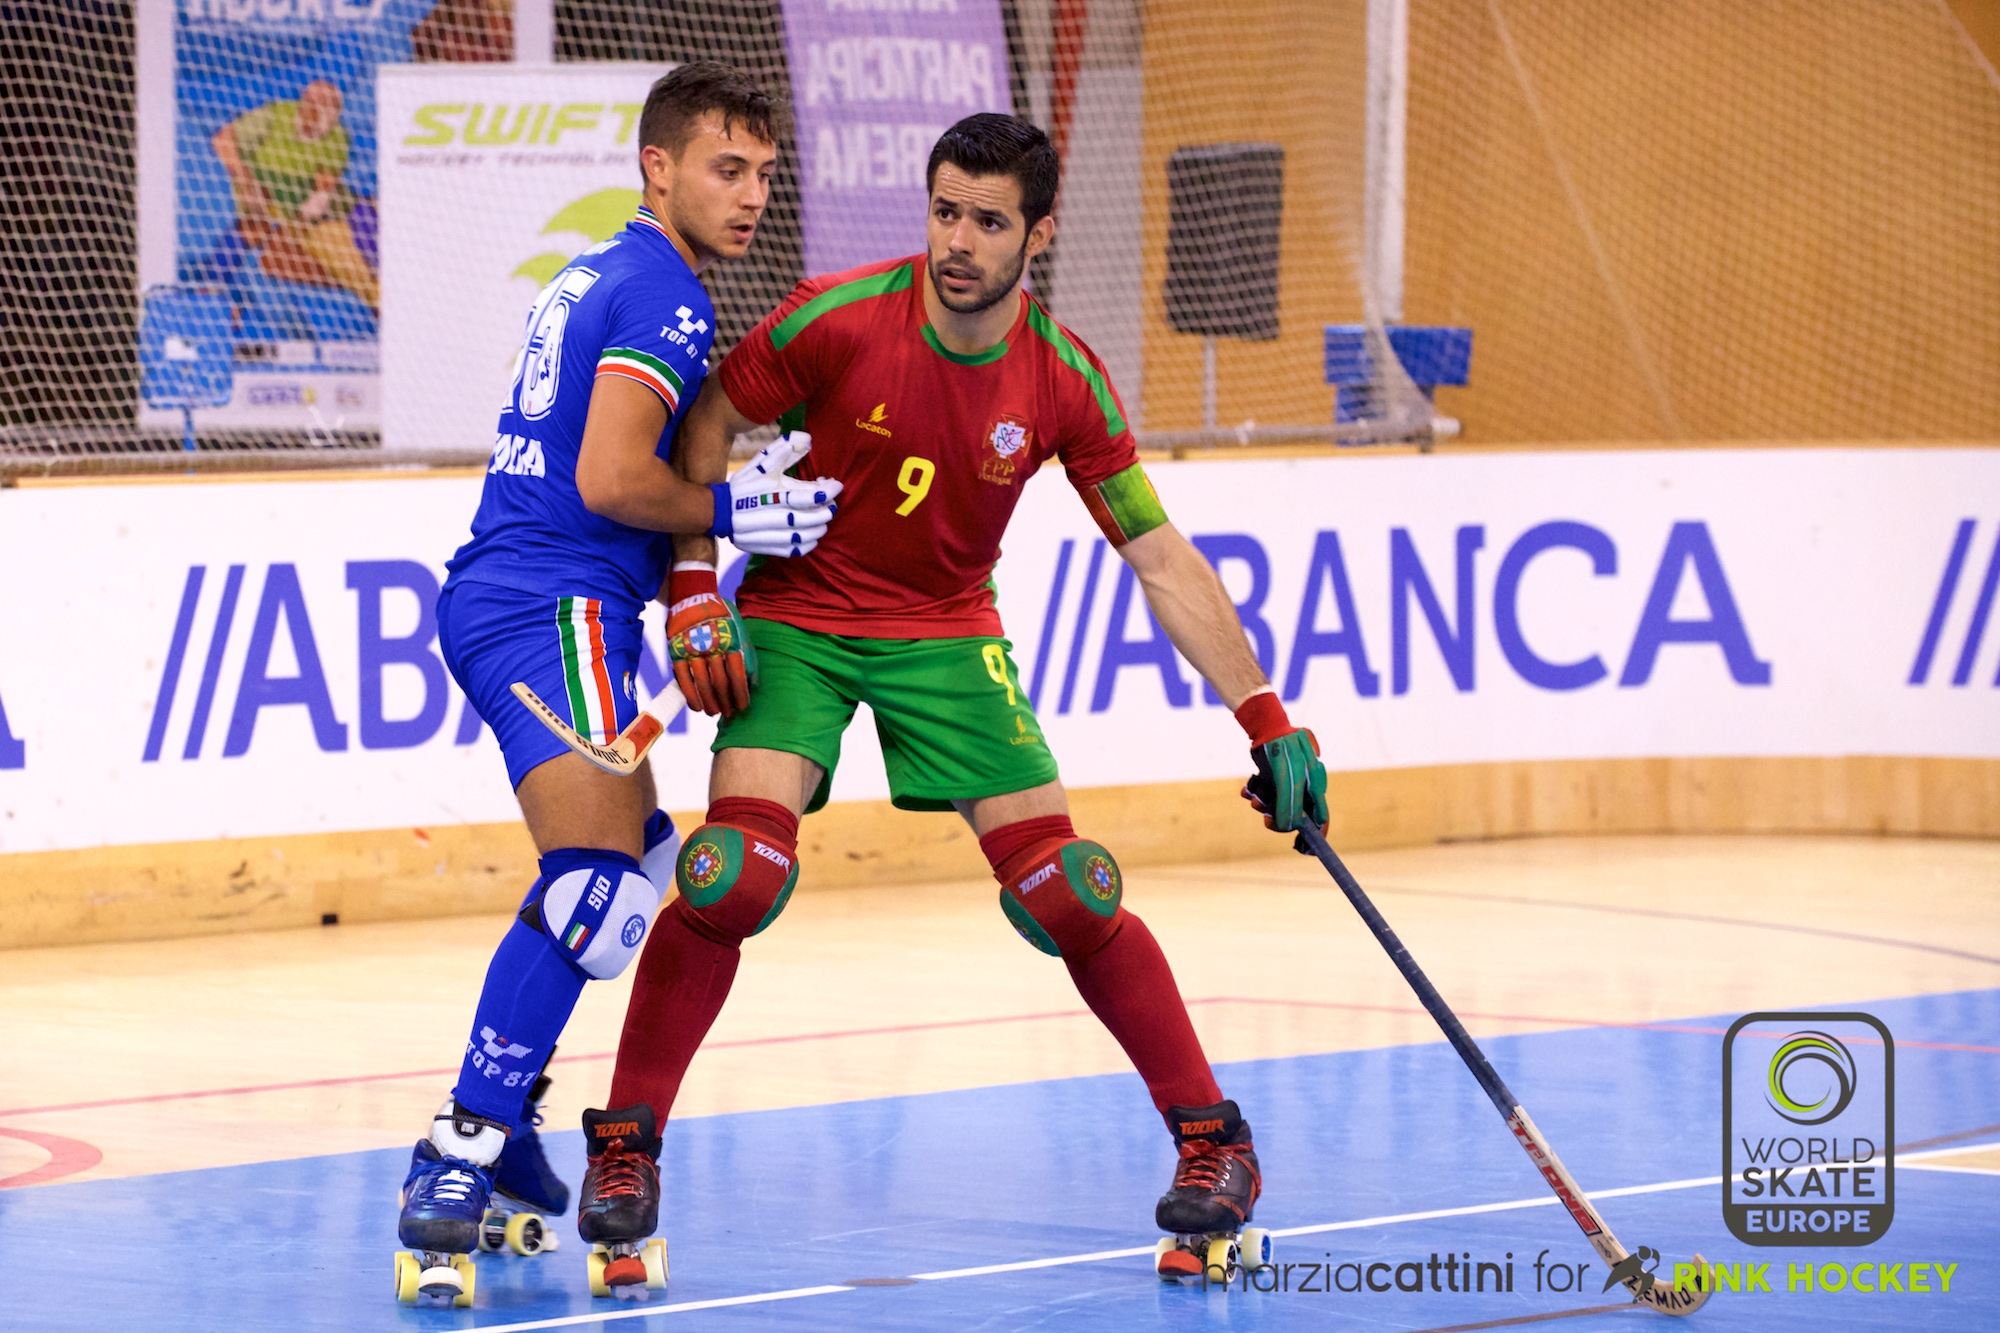 PHOTOS – 21/07/2018 - EUROHOCKEY CORUNA 2018 - Match #35 - Portugal x Italy – Photos by Marzia Cattini